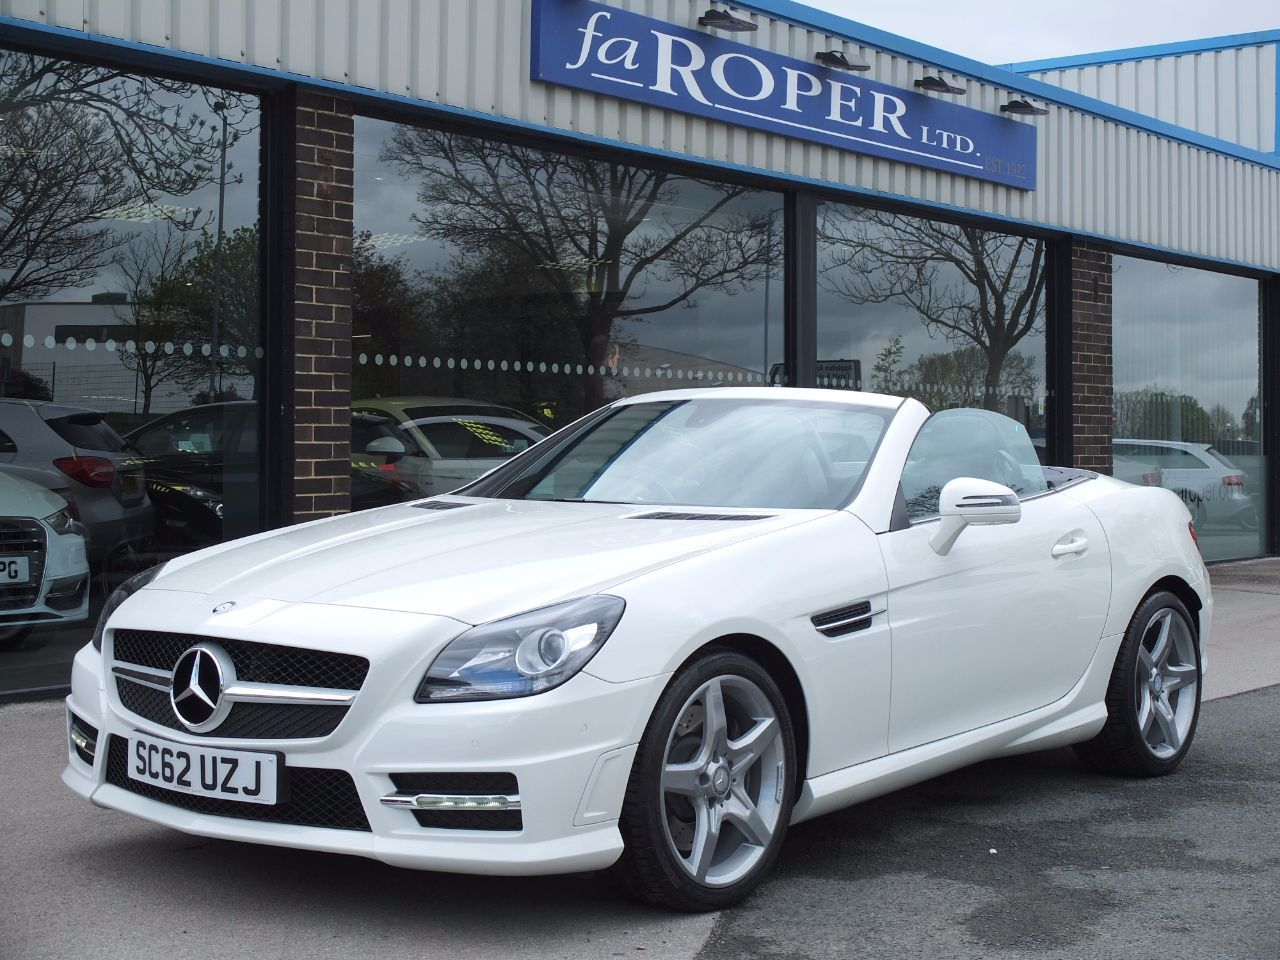 Mercedes-Benz SLK 2.1 SLK 250 CDI BlueEFFICIENCY AMG Sport Auto Convertible Diesel Calcite WhiteMercedes-Benz SLK 2.1 SLK 250 CDI BlueEFFICIENCY AMG Sport Auto Convertible Diesel Calcite White at fa Roper Ltd Bradford